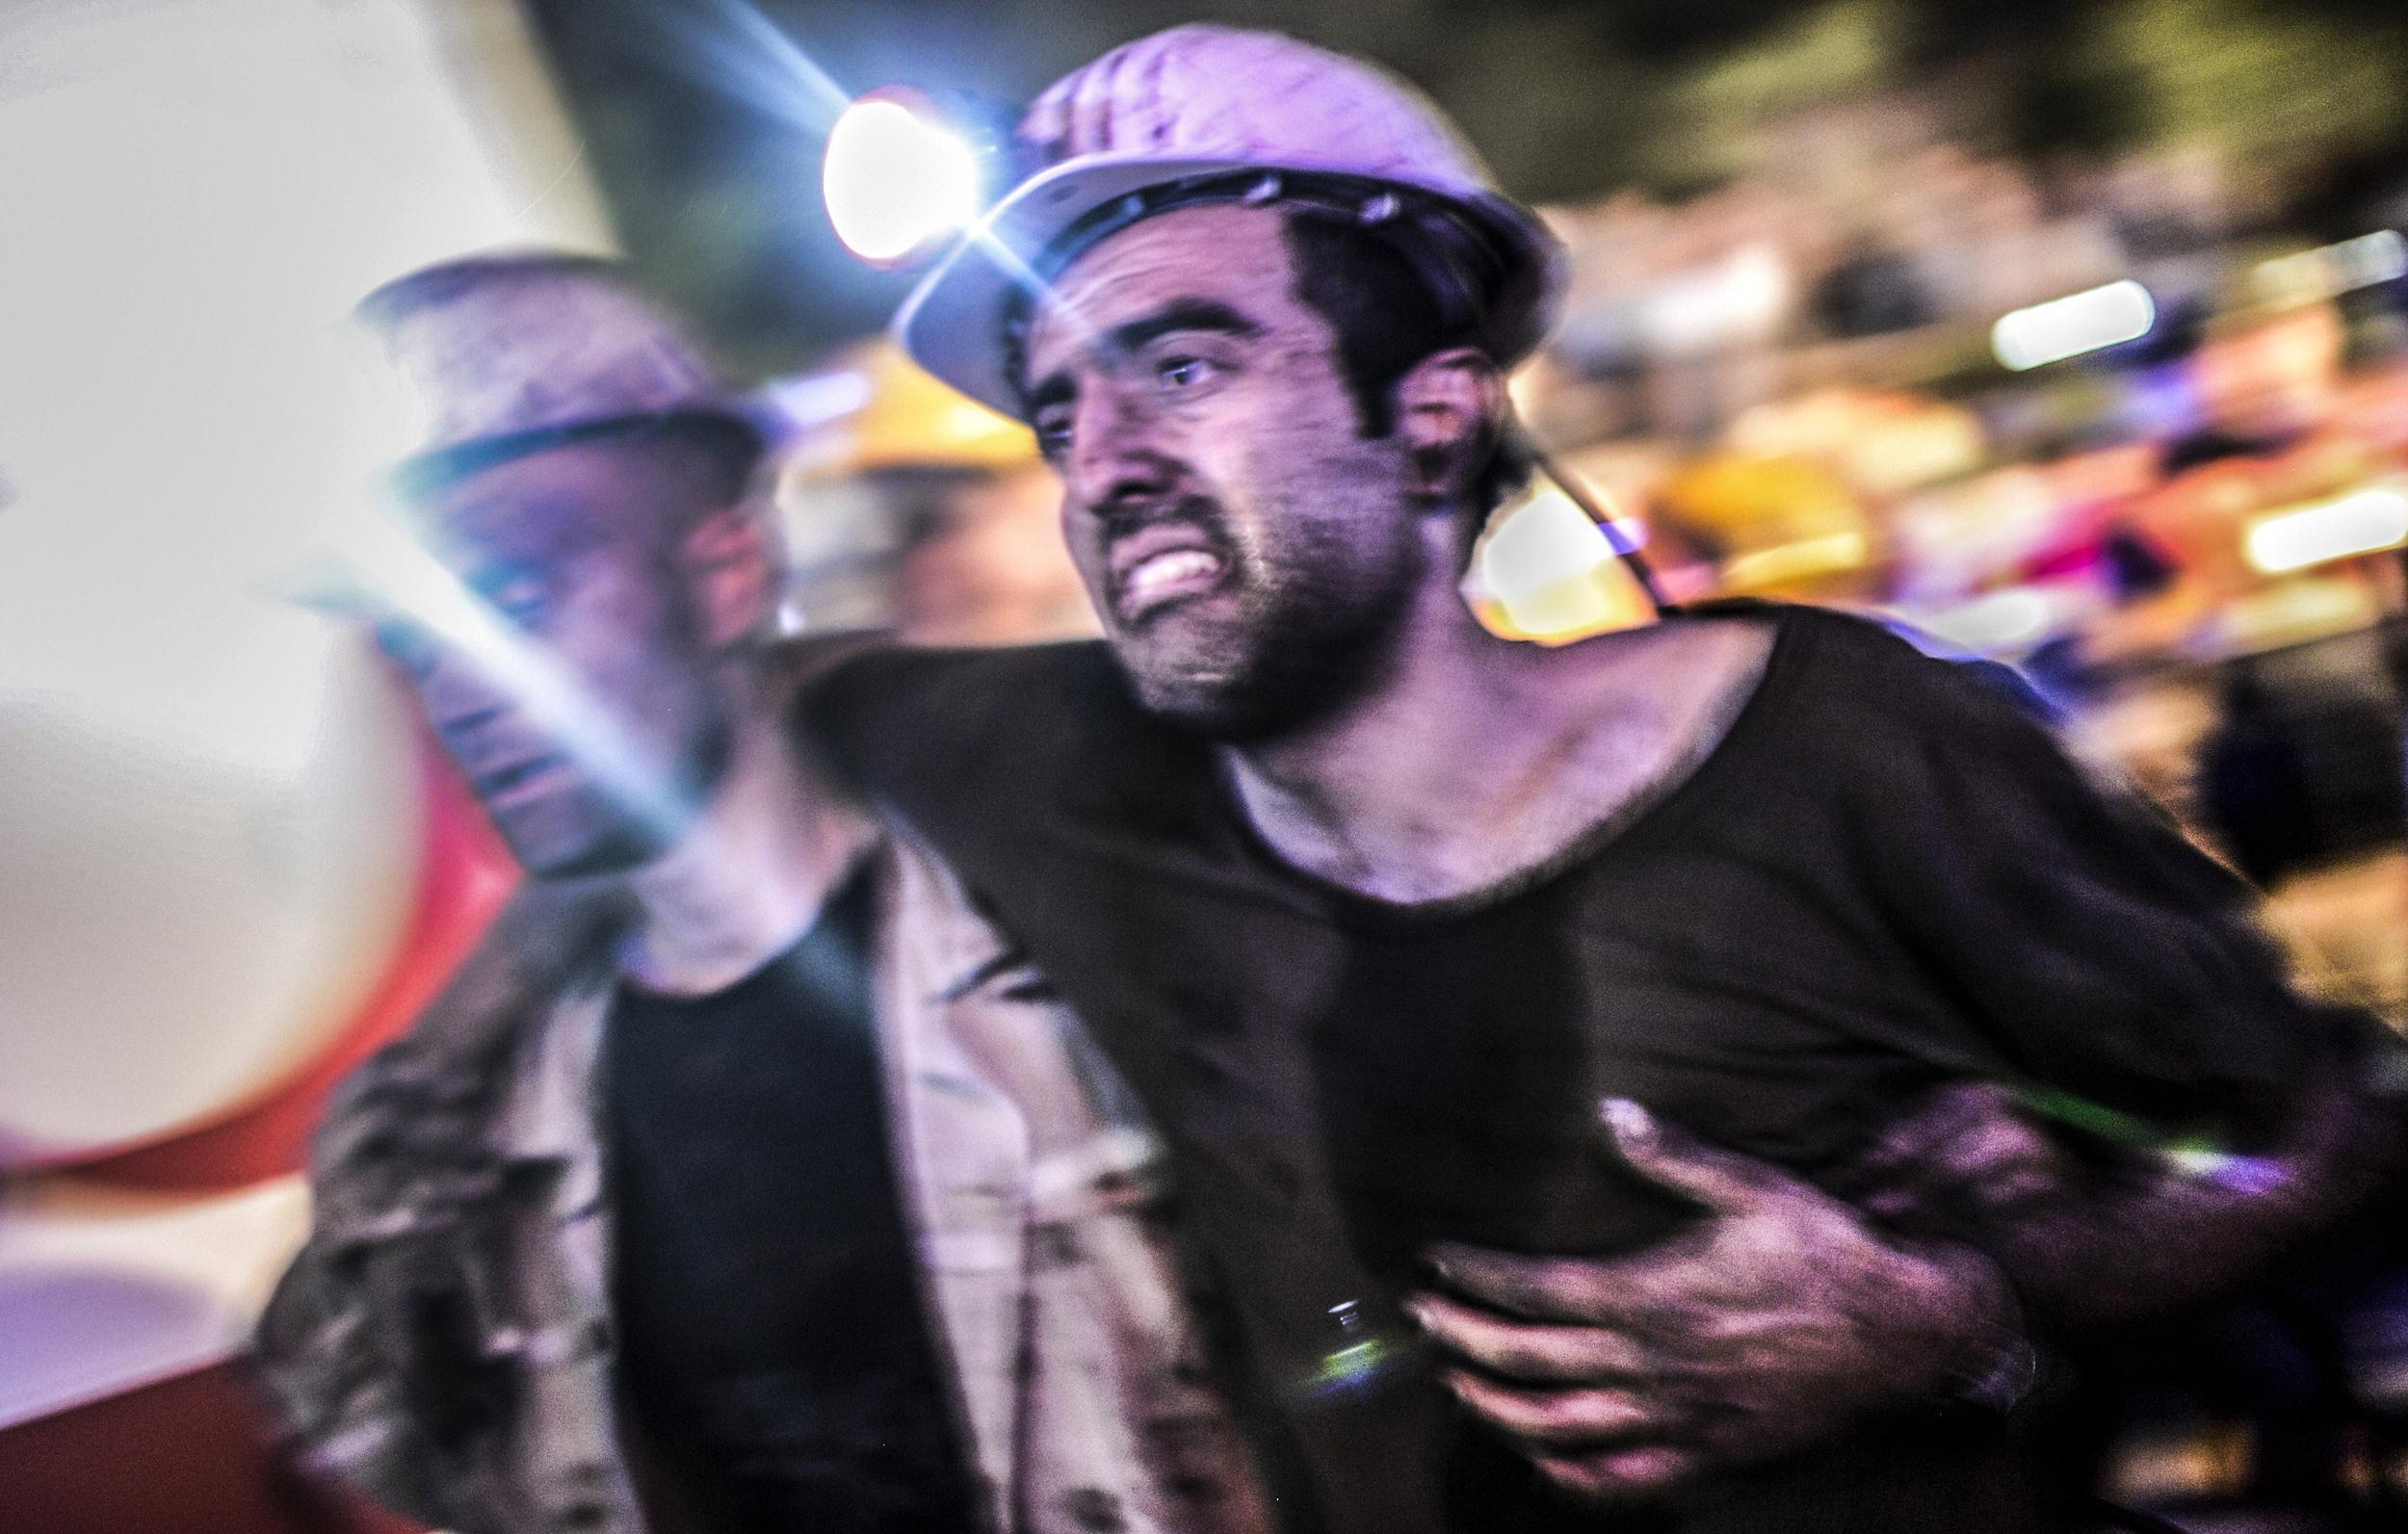 Image: An injured miner is helped by rescuers on May 13, 2014 after an explosion in a coal mine in Manisa, Turkey.